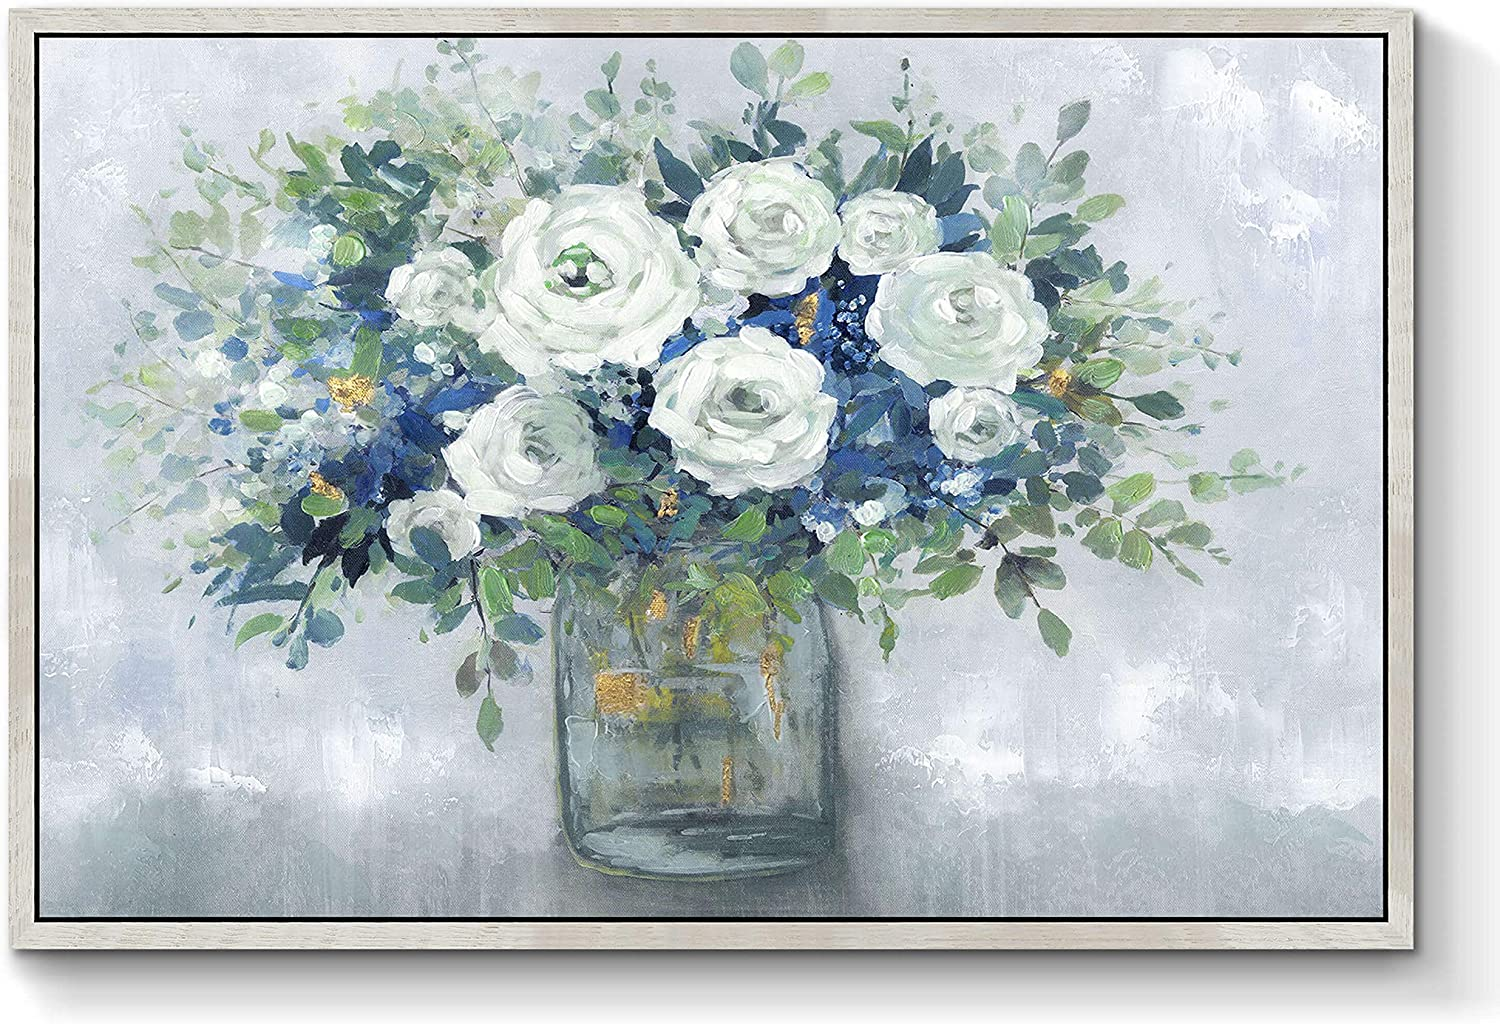 TAR TAR STUDIO Flower Canvas Wall Art Framed: Abstract Floral Bouquet in Glass Vase Artwork Painting for Bedroom (36''W x 24''H, MultipleSizes)